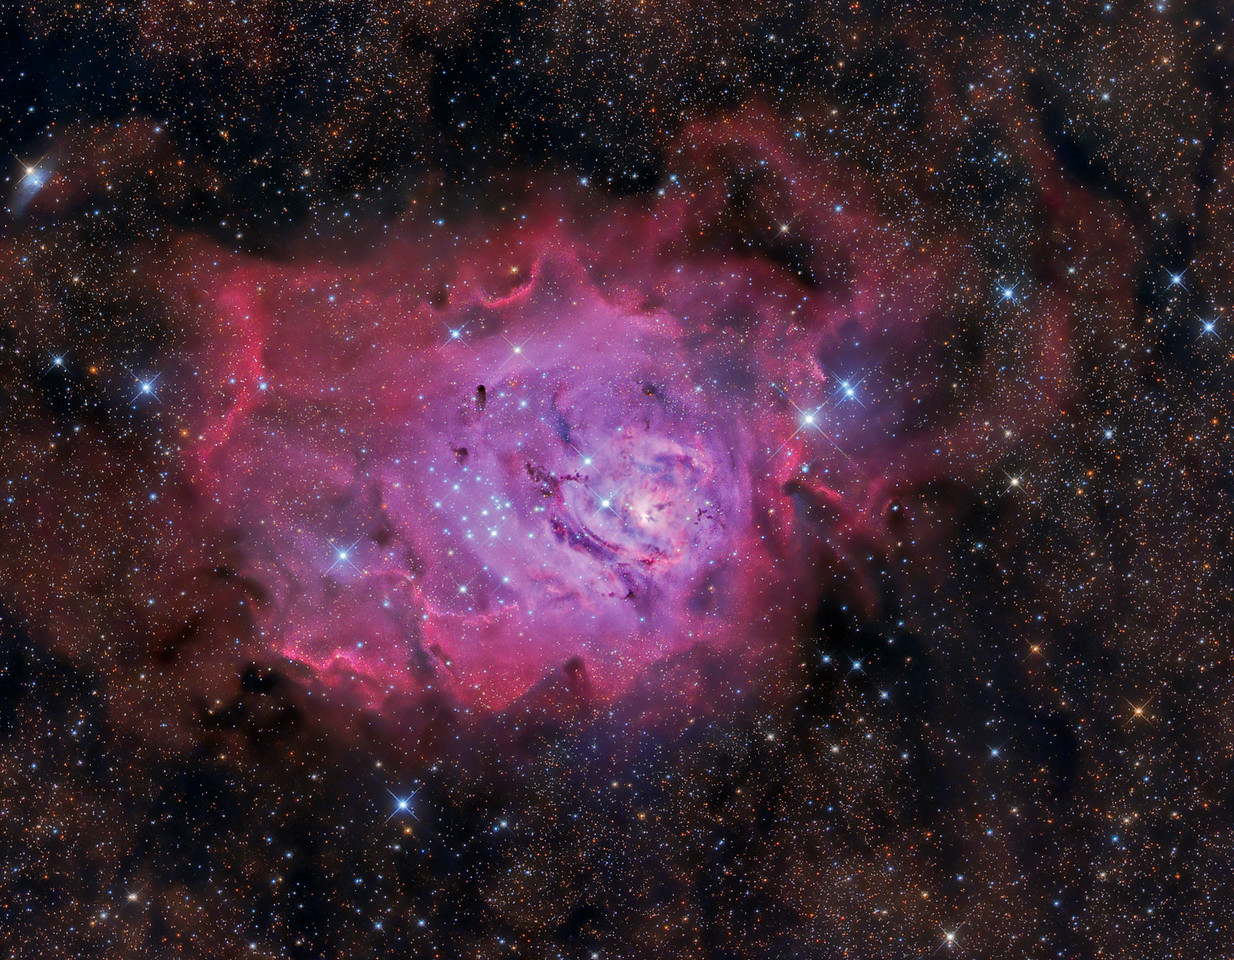 M8 The Lagoon Nebula is about 5000 light years from Earth and is about 110 light years across. This can be seen with naked eye from dark locations.  Taken Sept 1,2 2012 from New Mexico Skies FLI Microline 11002OSC ASA N10 Newtonian Astrograph 9X10min Darks, Flats, Bias